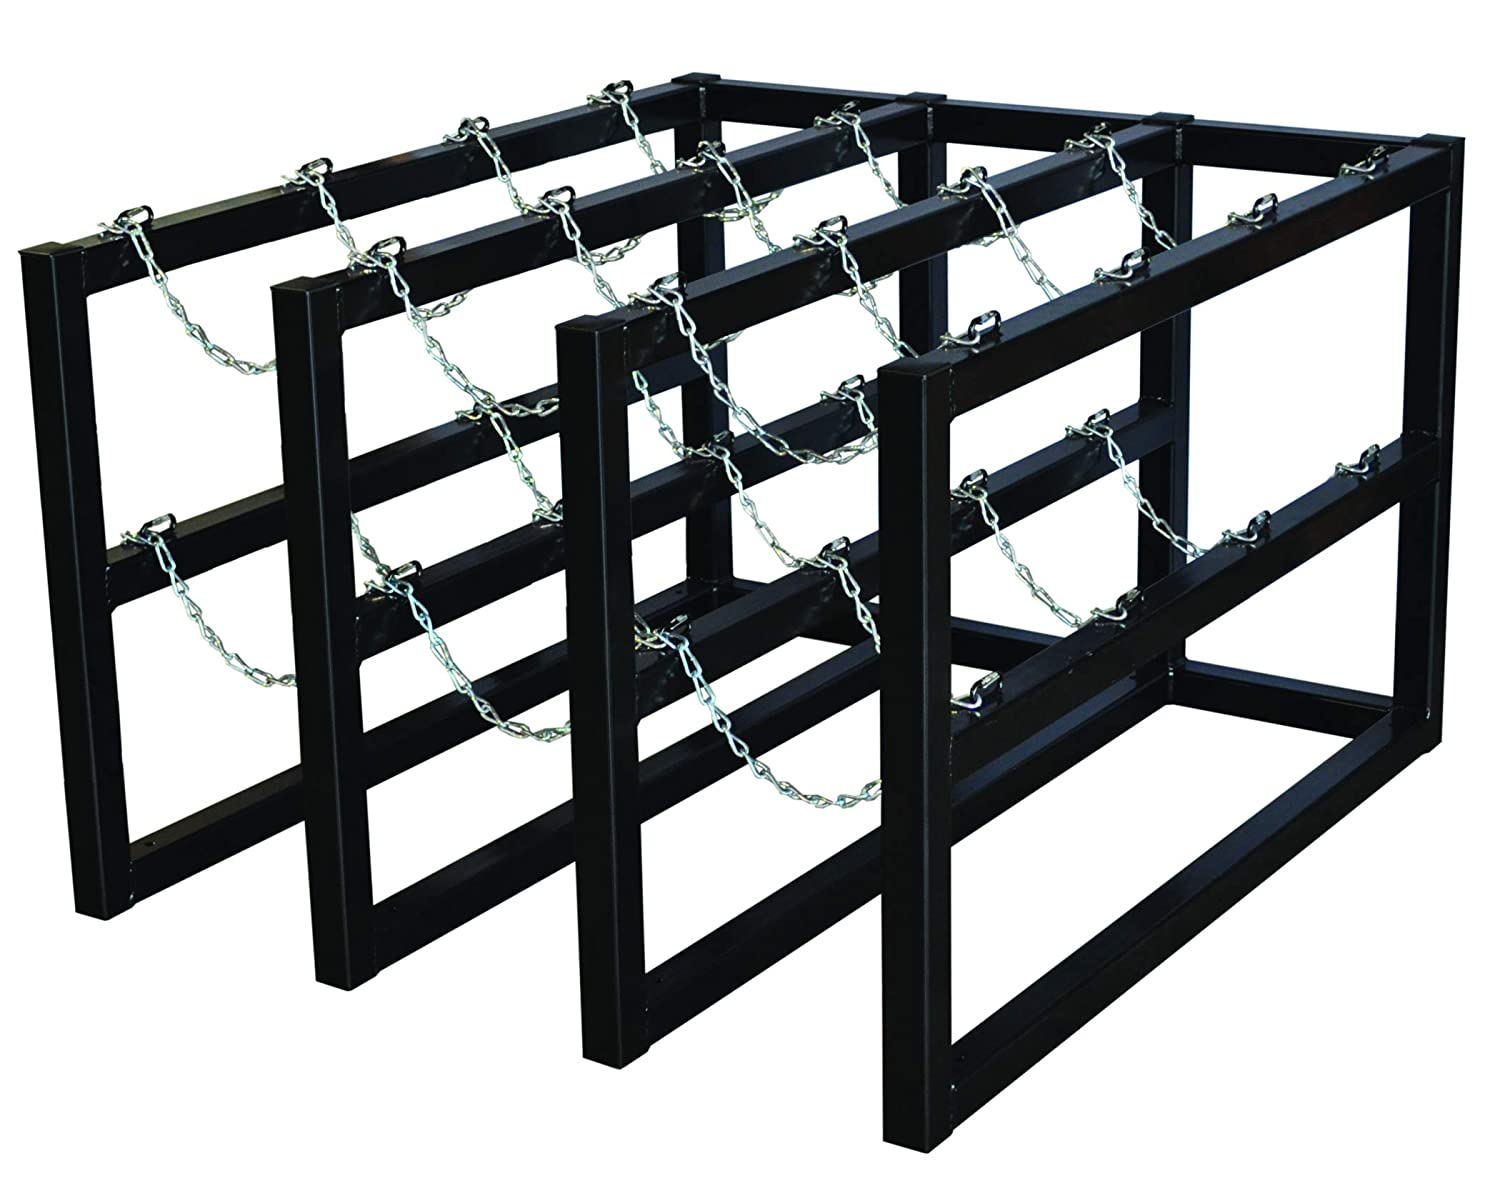 Justrite free shipping 35140 New Orleans Mall Cylinder Rack 3x4 Barricade